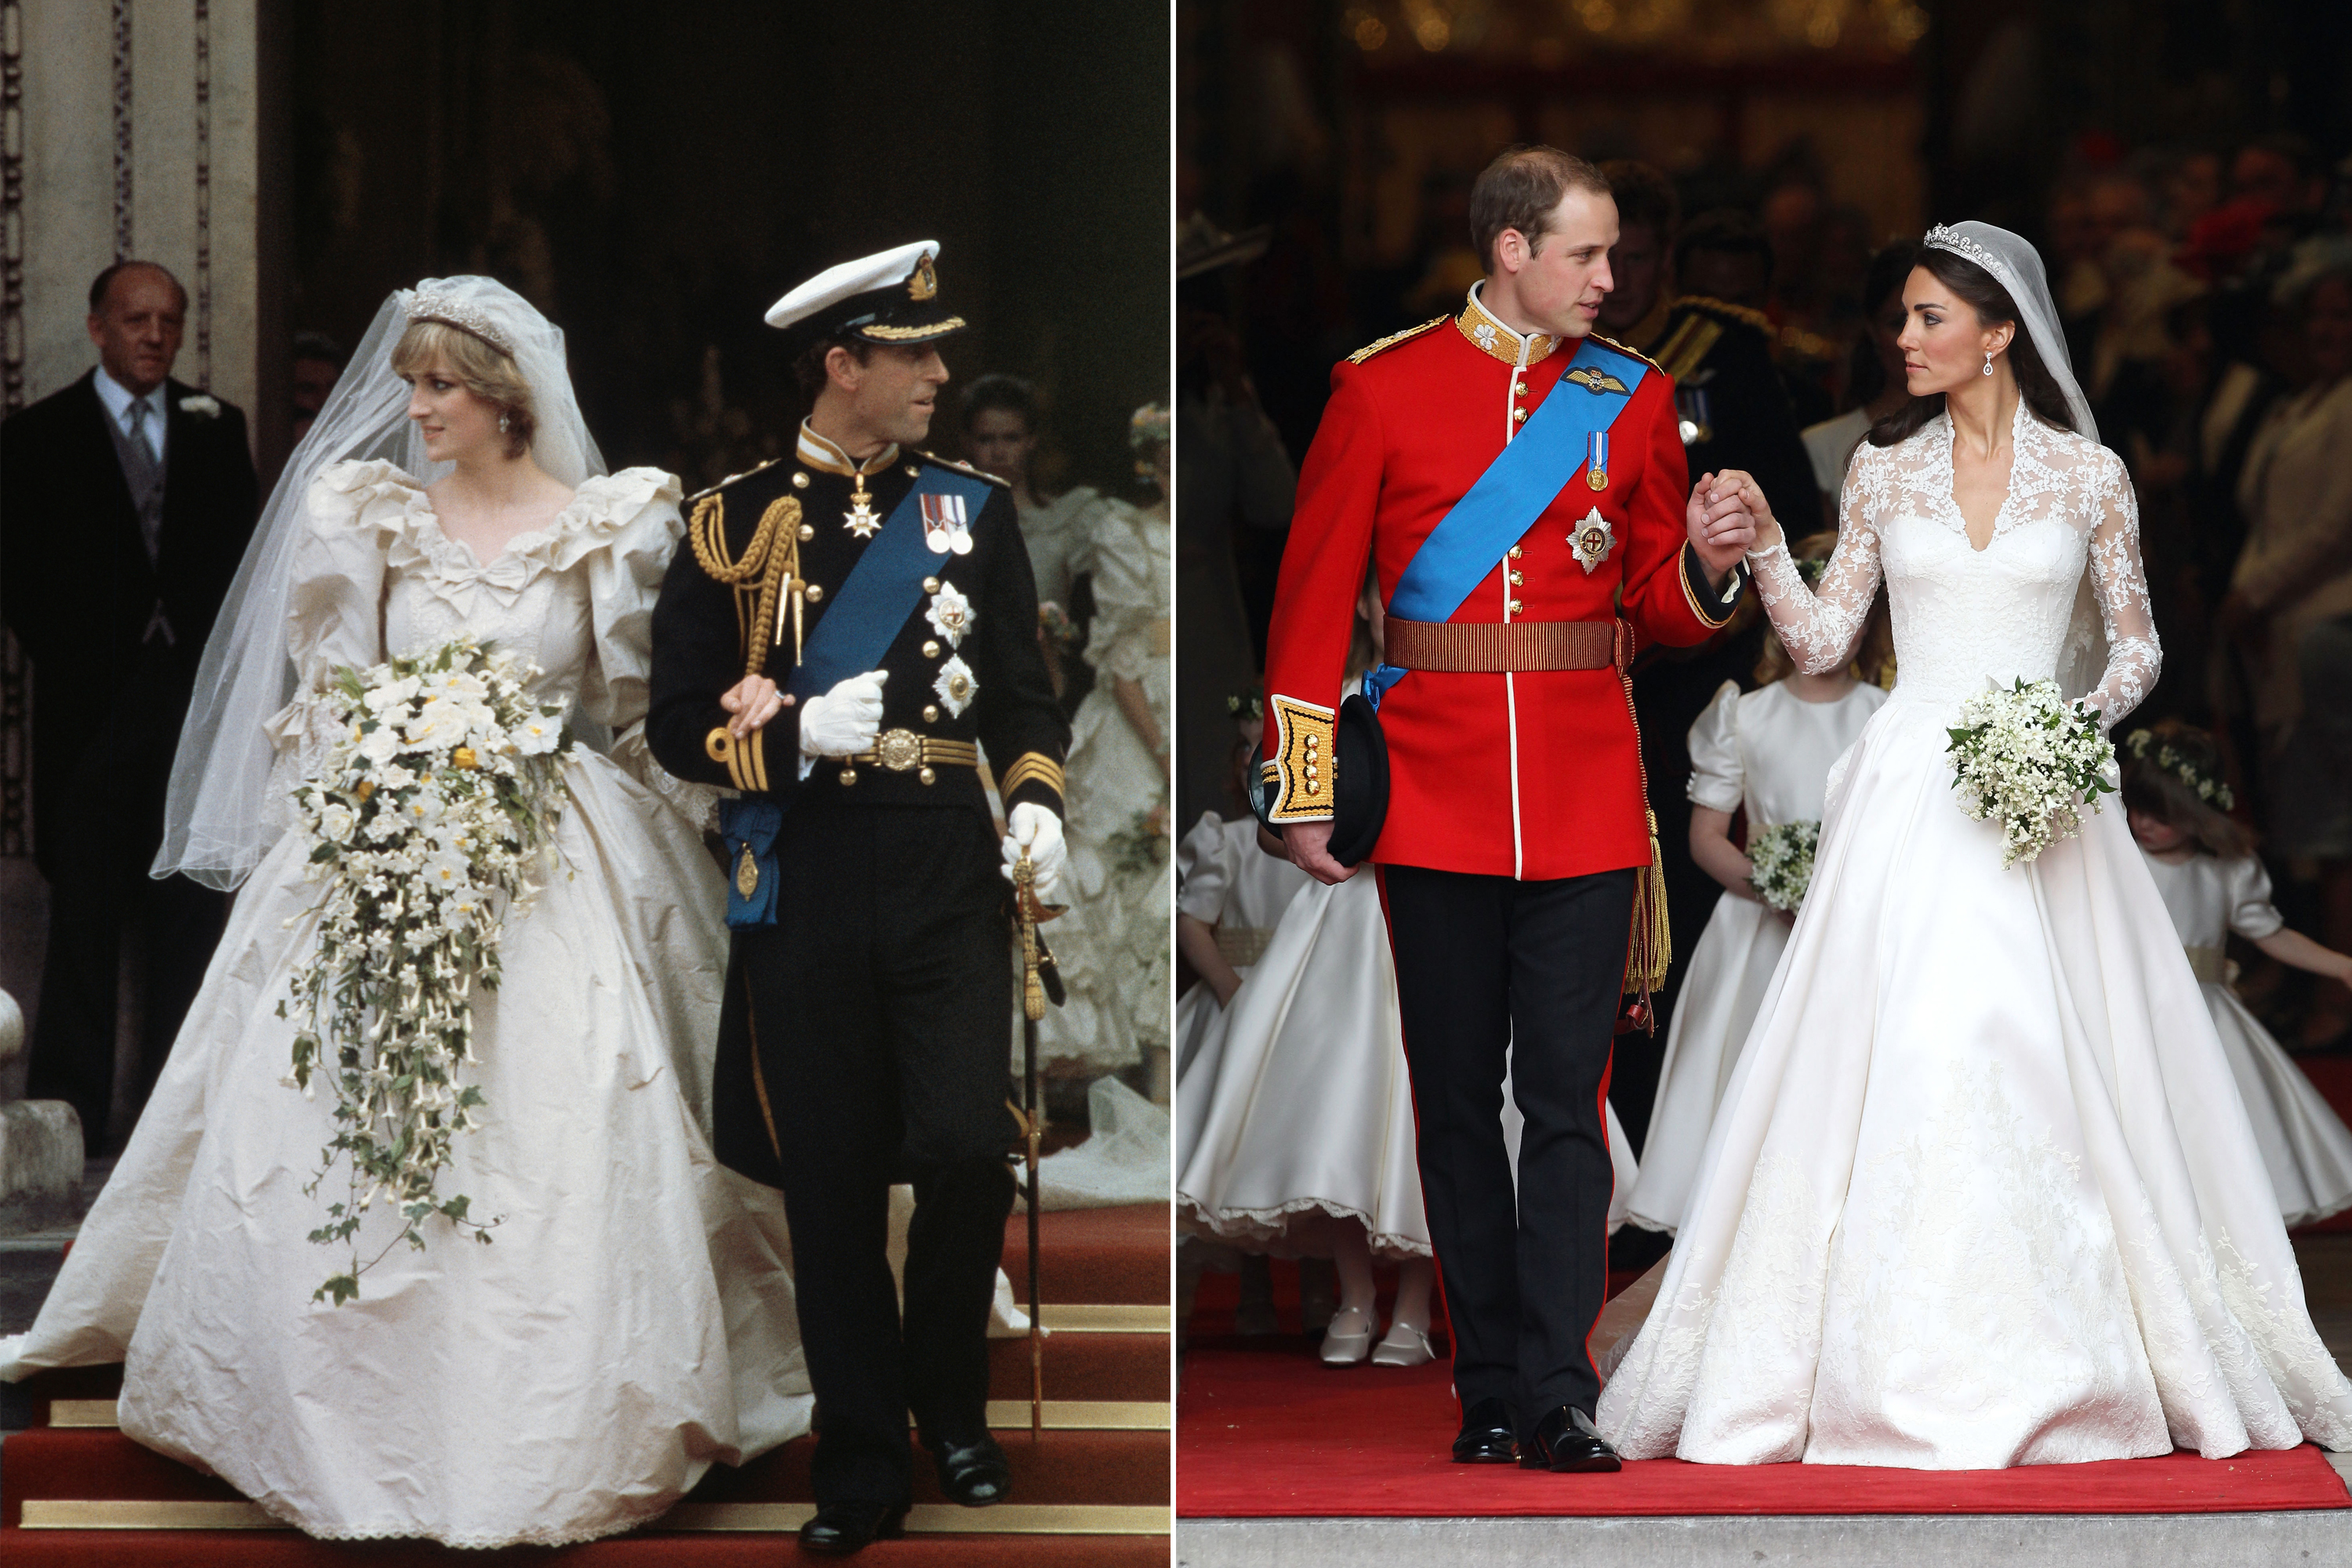 For their weddings, both Diana and Kate opted for full-skirted white gowns that were made by U.K. designers; Diana's by David and Elizabeth Emanuel, Kate's by Alexander McQueen.